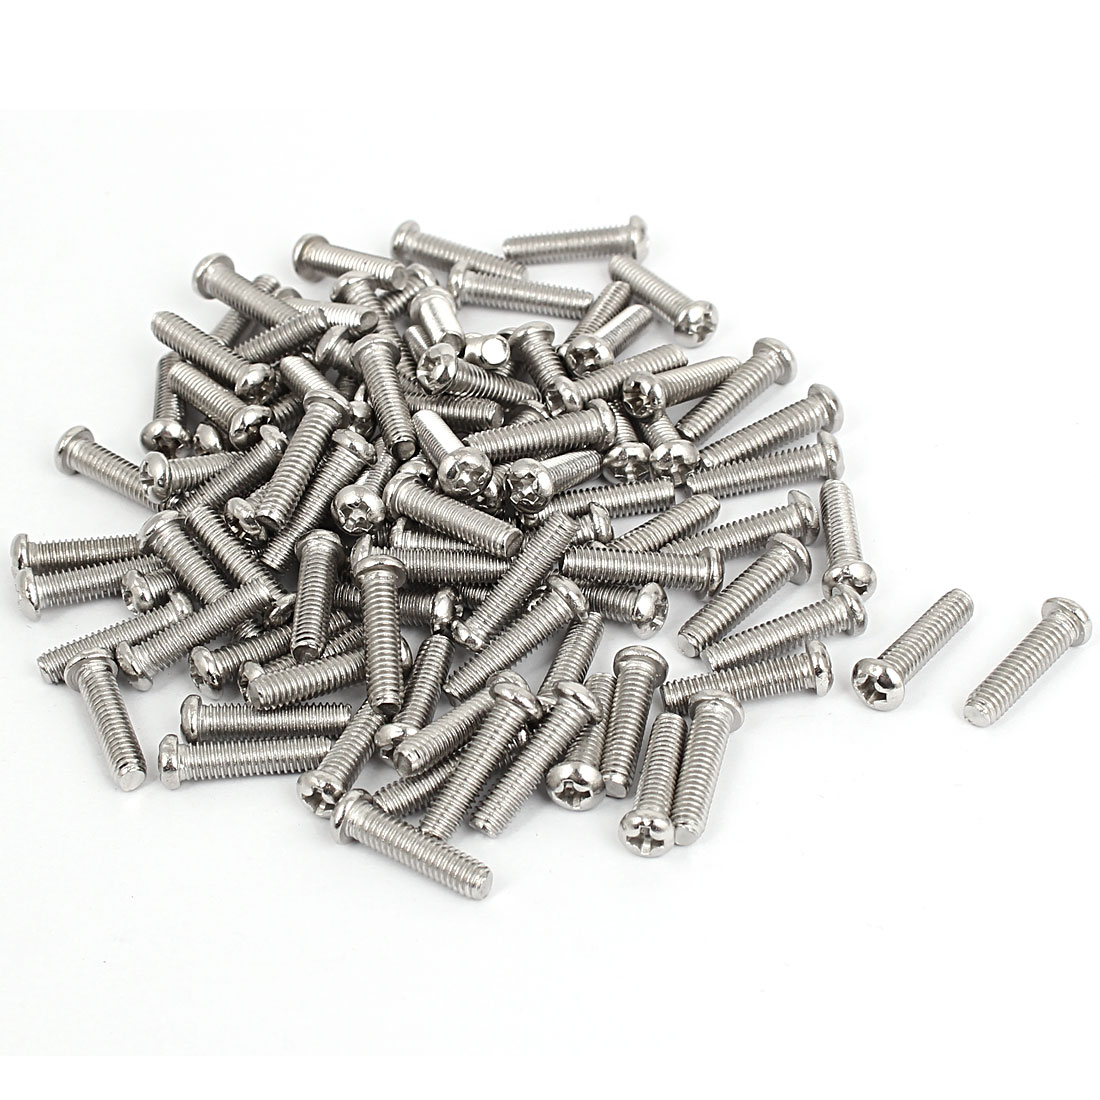 M4x16mm Stainless Steel Phillips Round Pan Head Machine Screws 100pcs